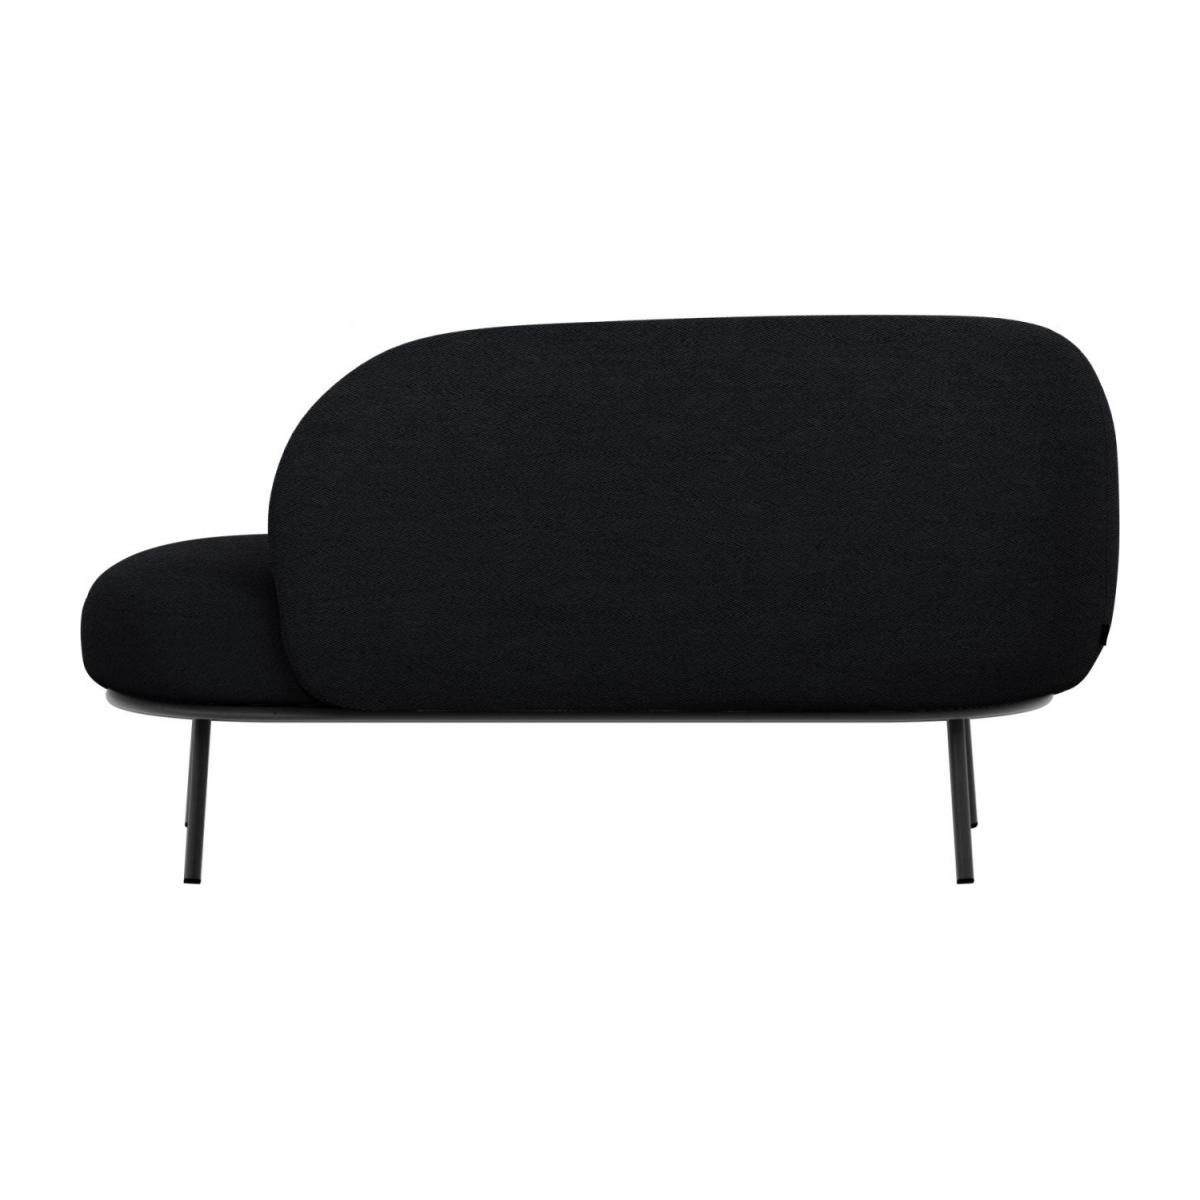 Chaise longue en tela - Antracita  n°4